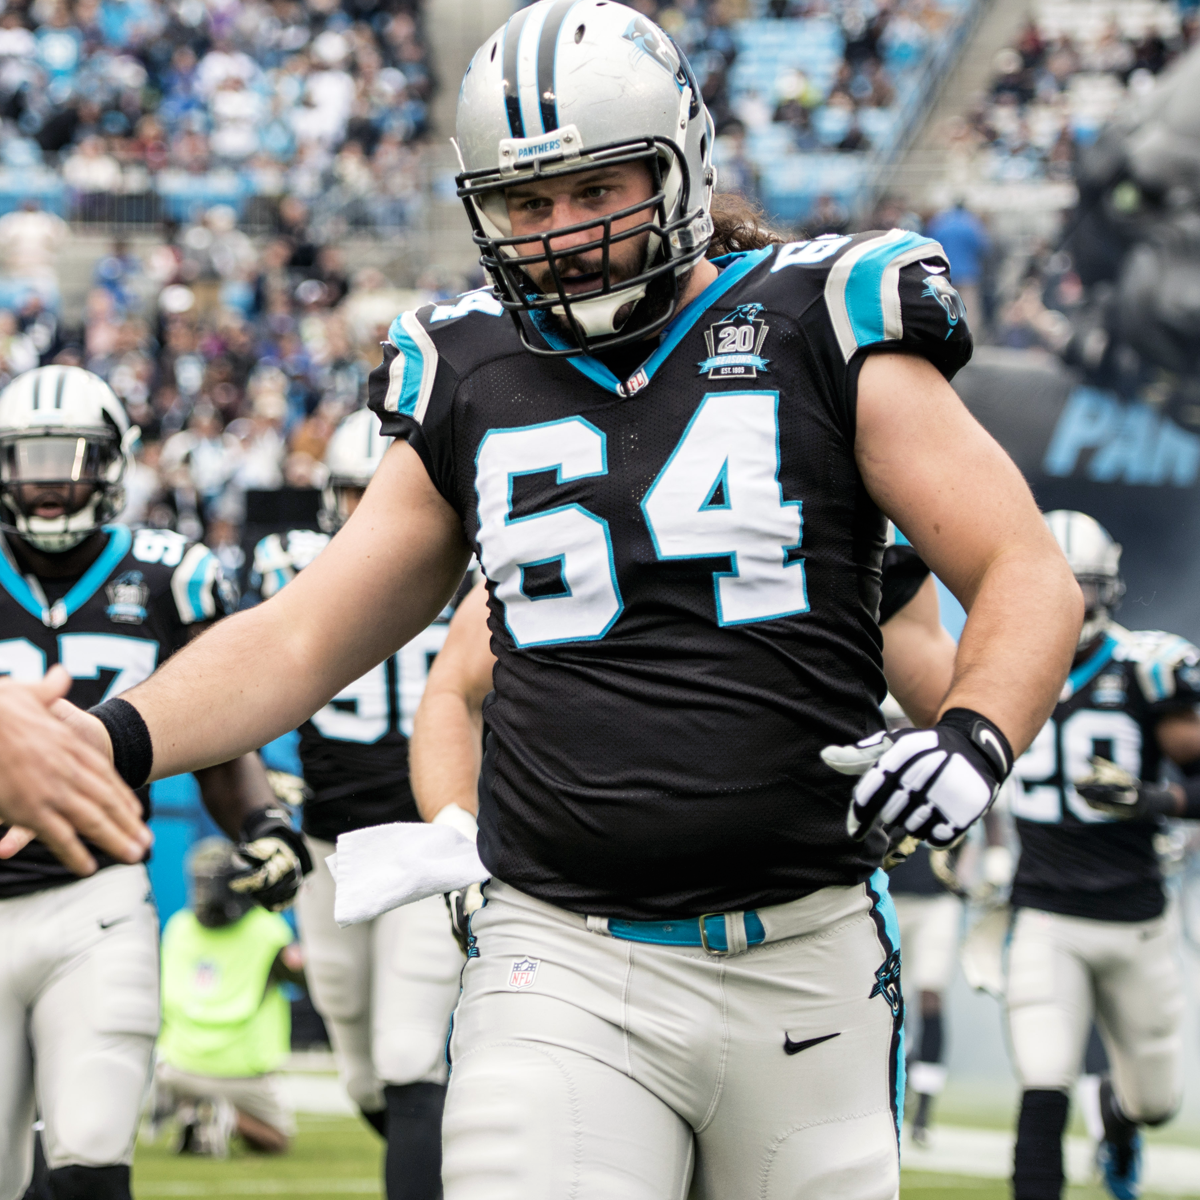 carolina panthers on twitter tomdunphy great question tom we